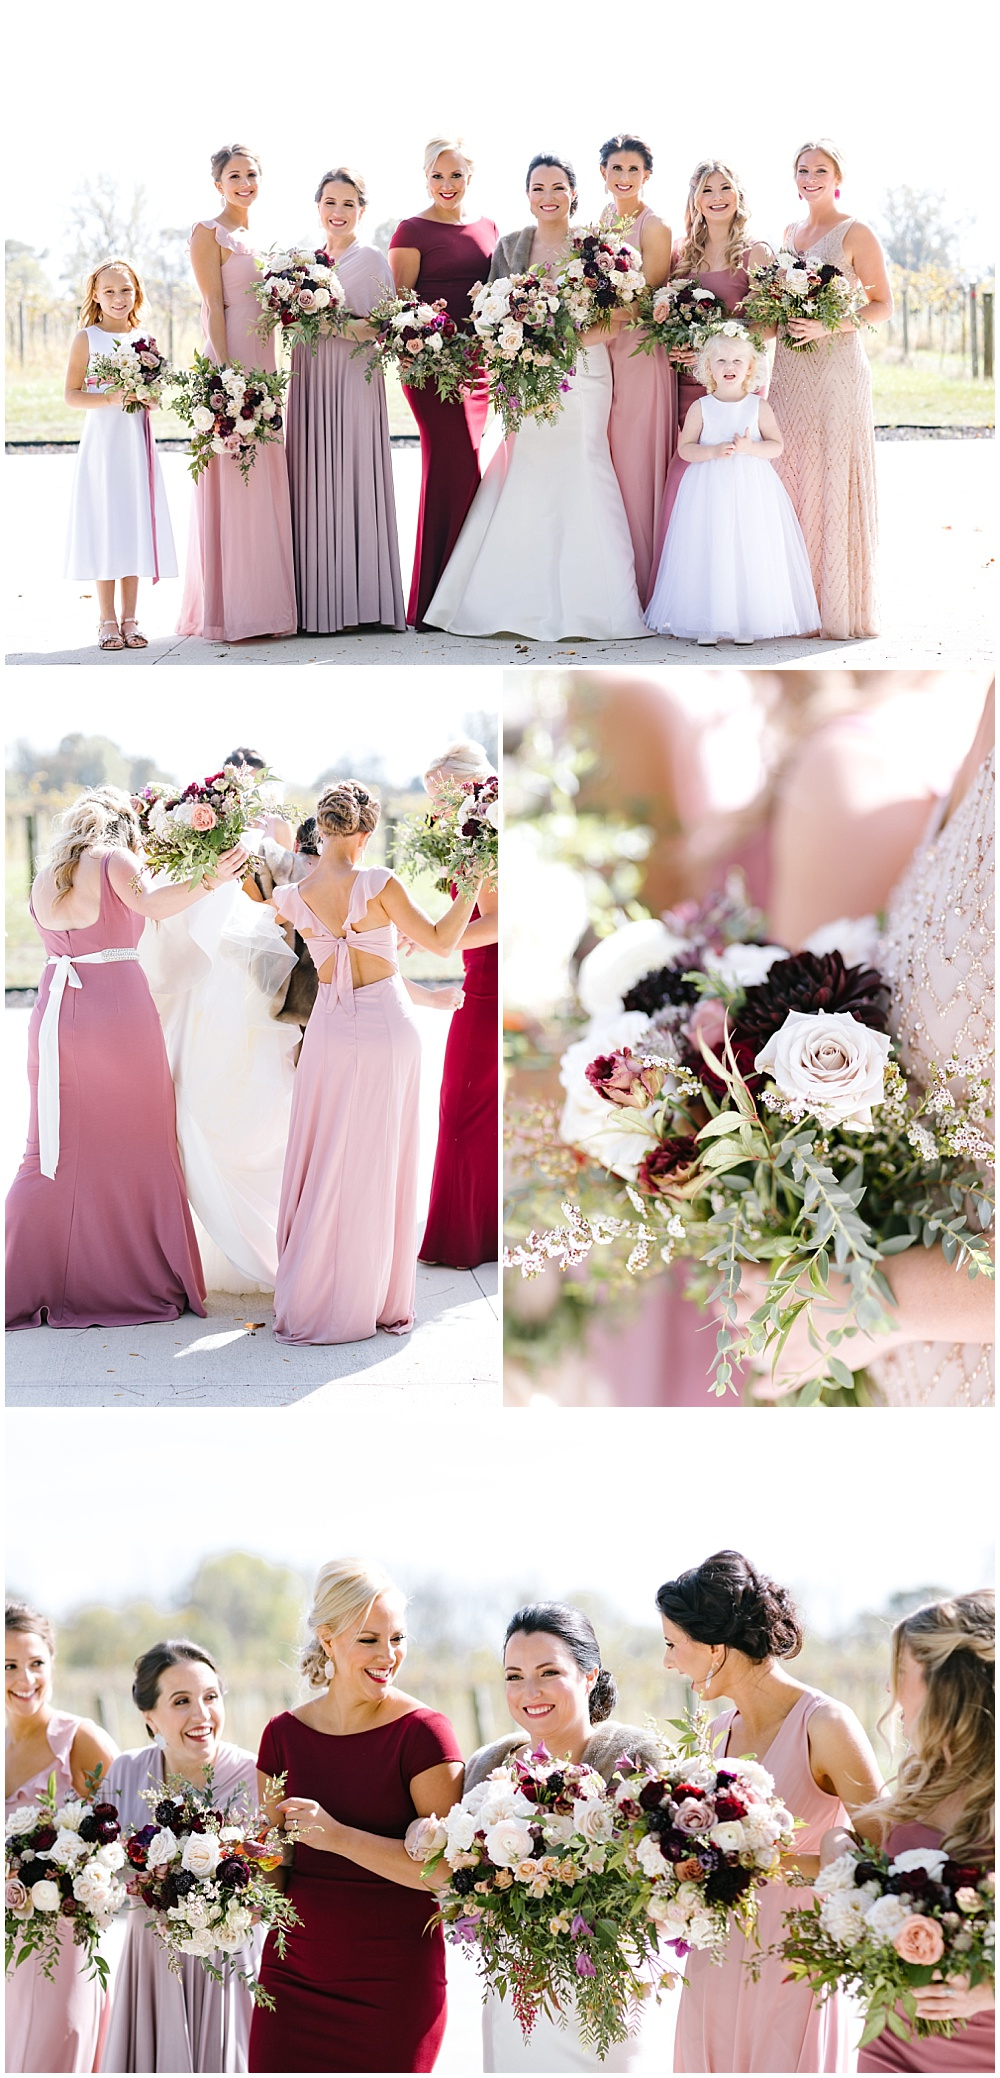 Rose quartz inspired wedding color palette with BHLDN bridesmaid dresses and a Marie Gabriel Couture bridal gown | Daniel's Vineyard wedding with Ivan & Louise + Jessica Dum Wedding Coordination